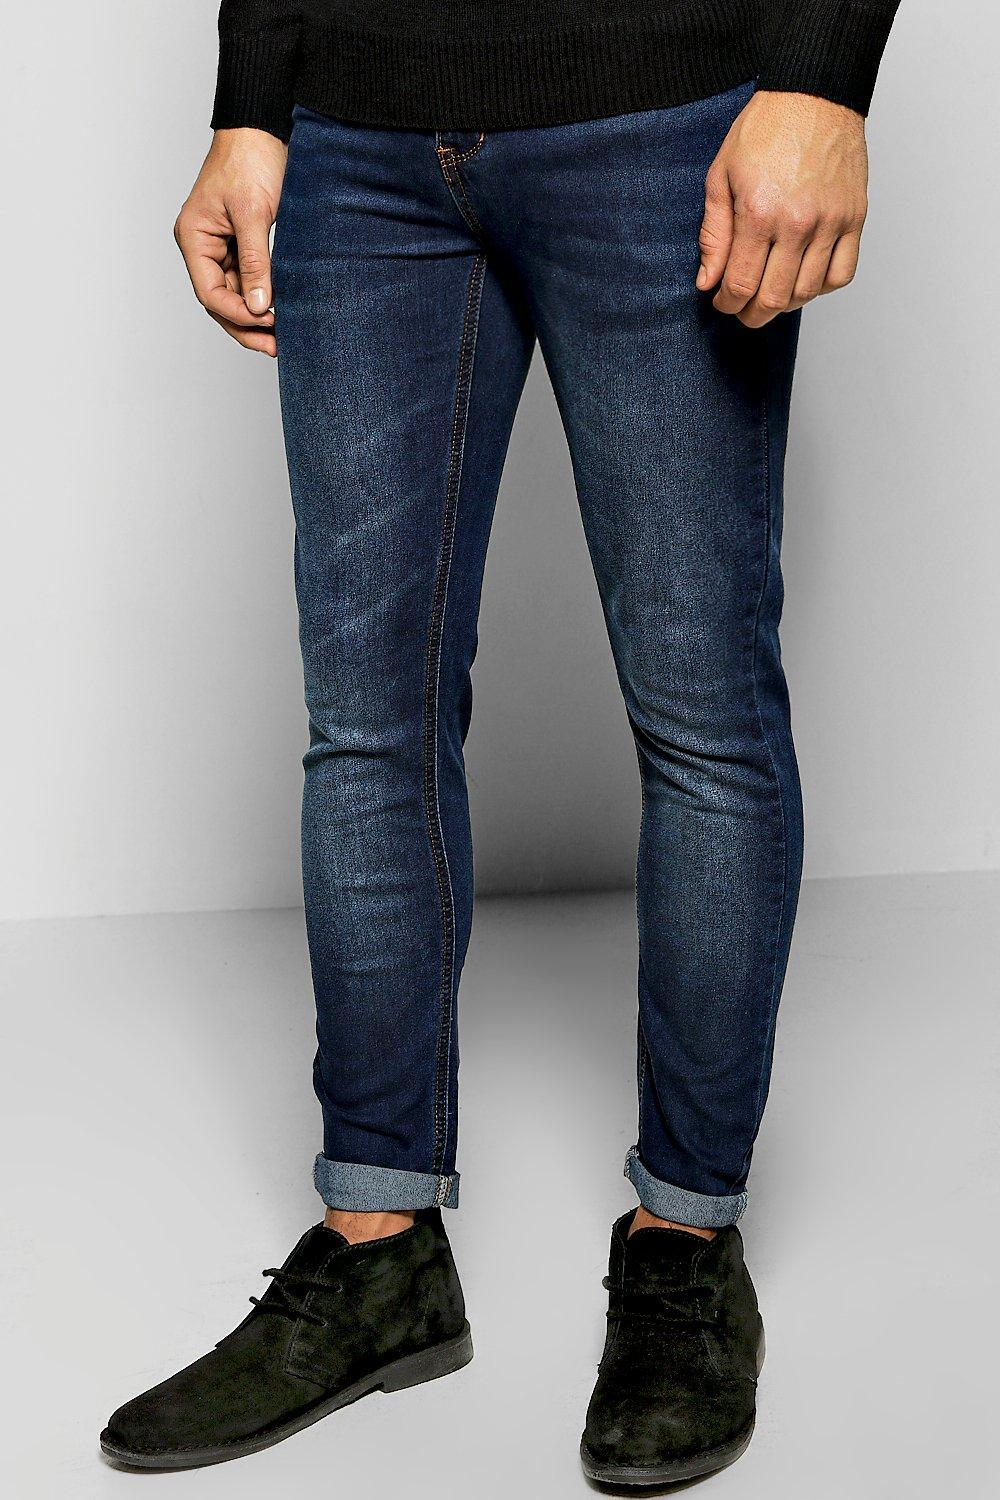 Boohoo Washed Stretch Skinny Denim Jeans Outlet Online Discount Codes Clearance Store Sale Pay With Paypal dqlo2Z